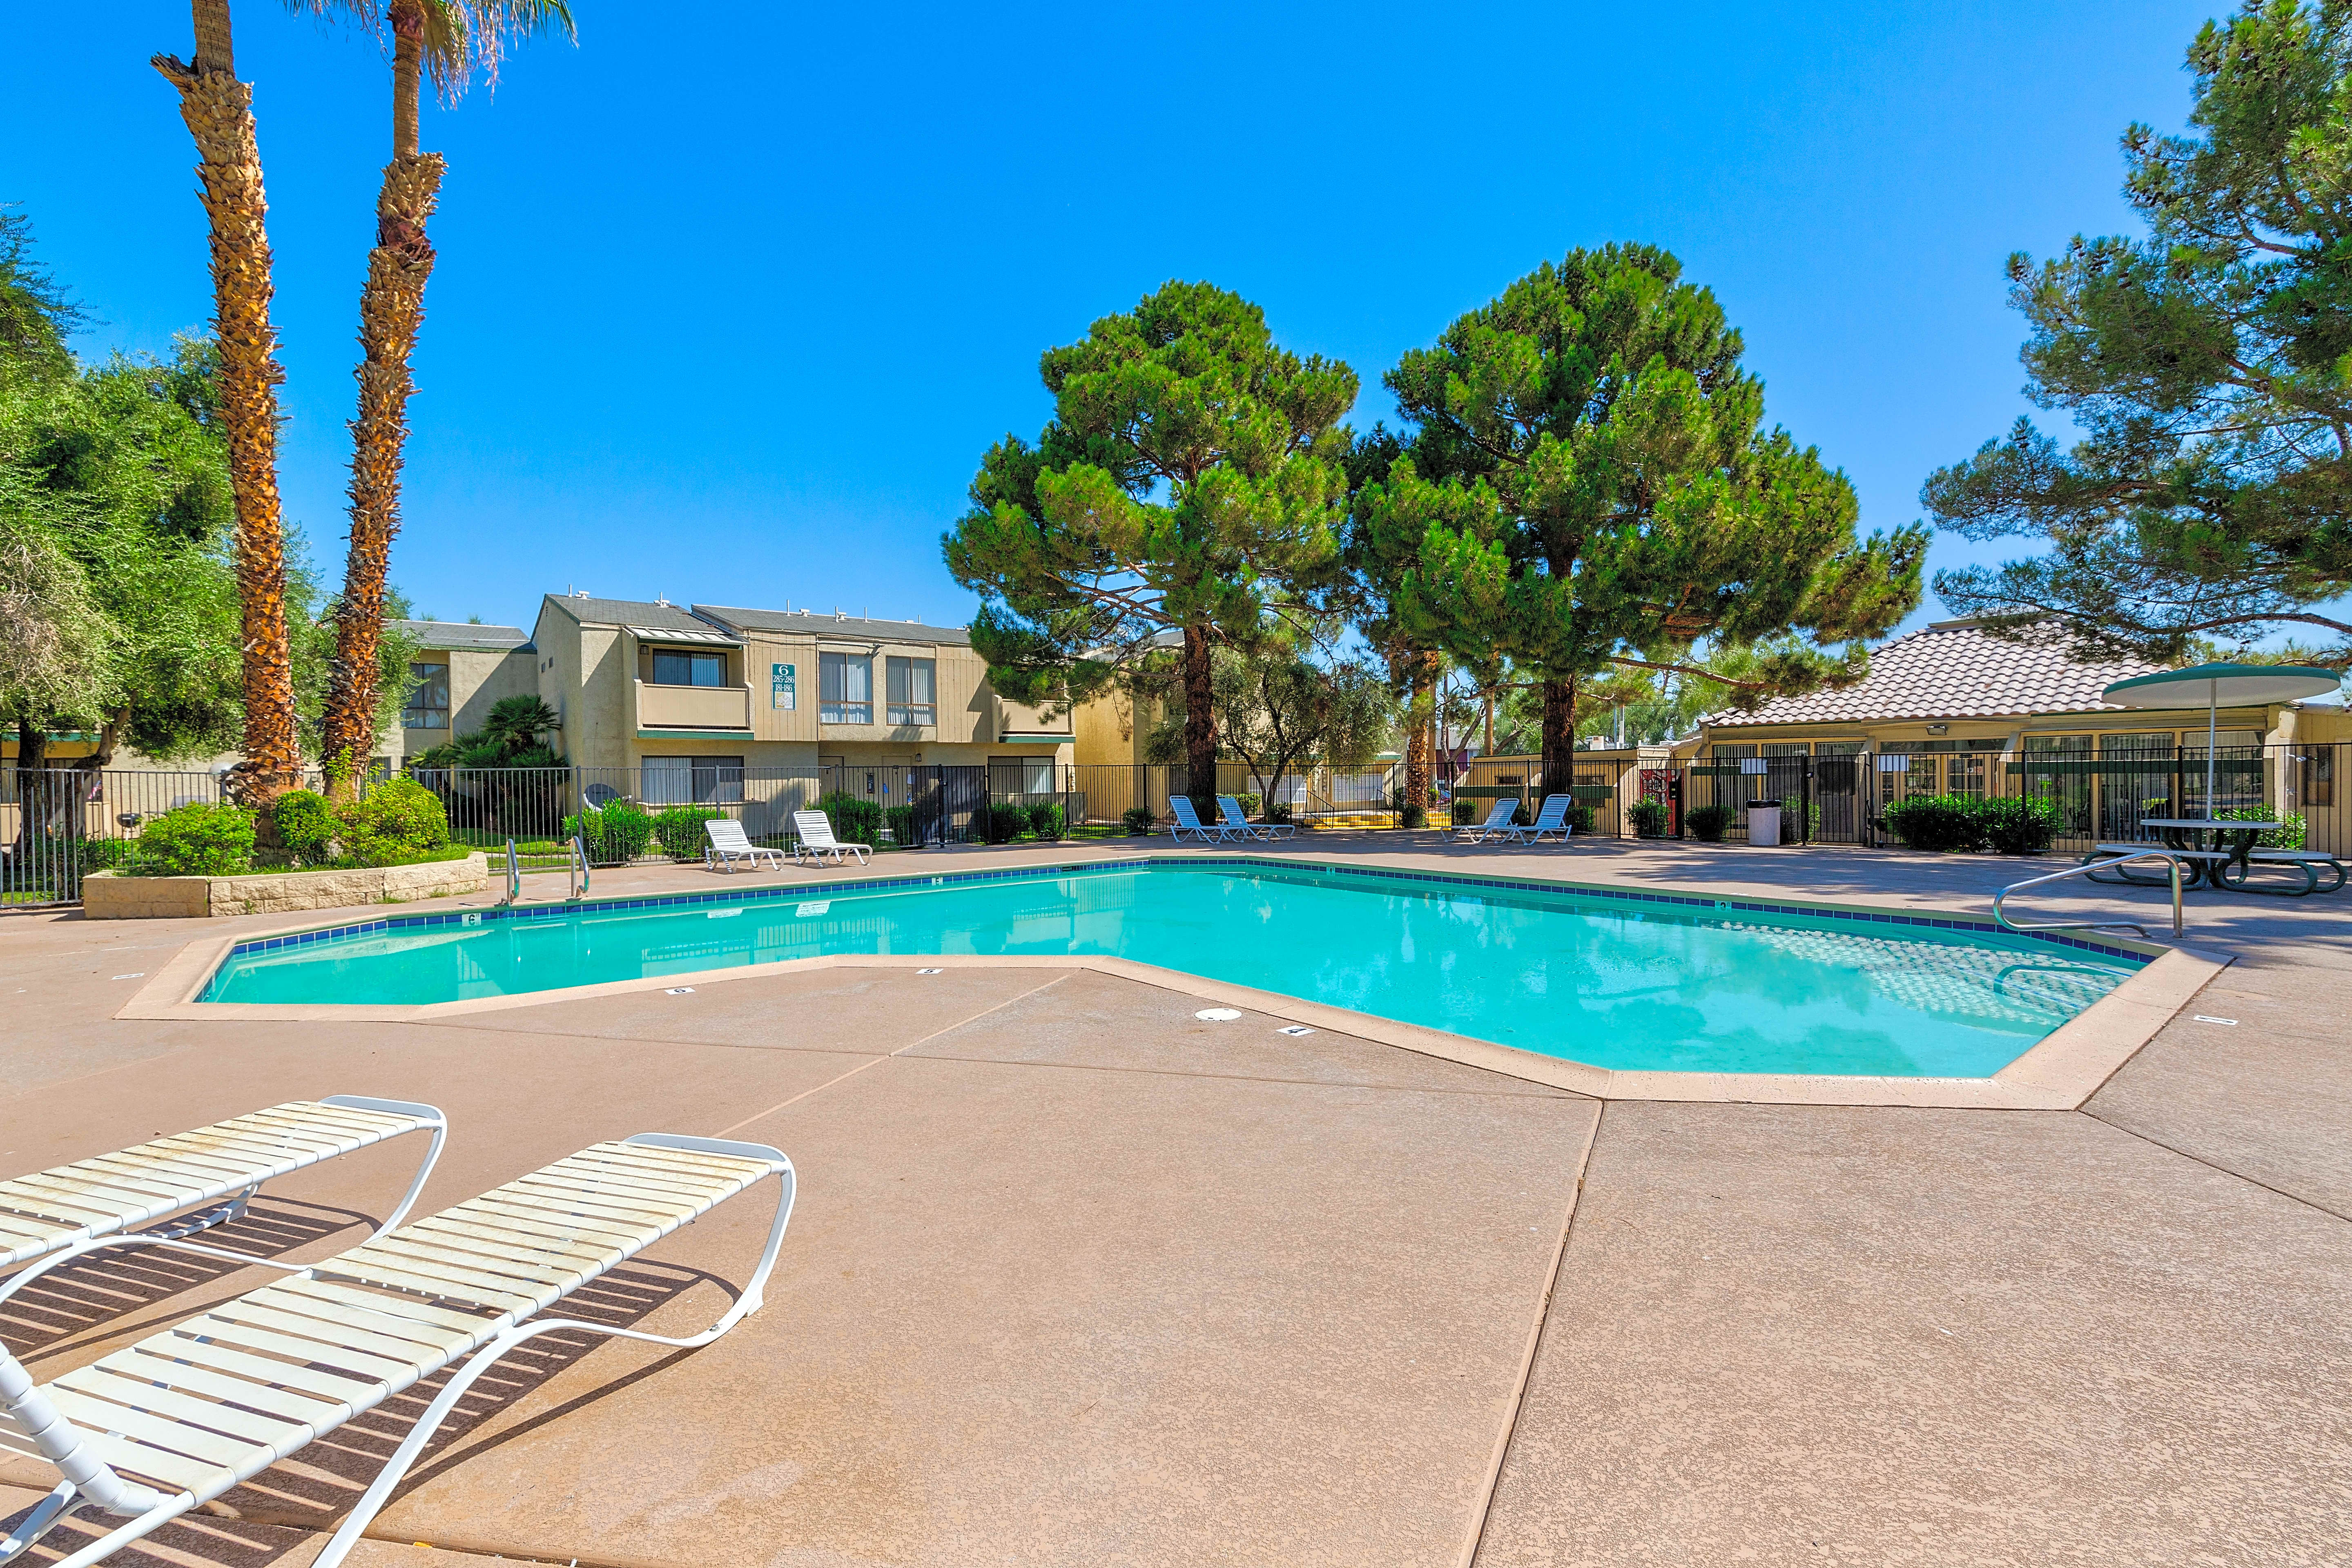 Apartments Near UNLV Tamarus Park At Heritage Square for University of Nevada-Las Vegas Students in Las Vegas, NV